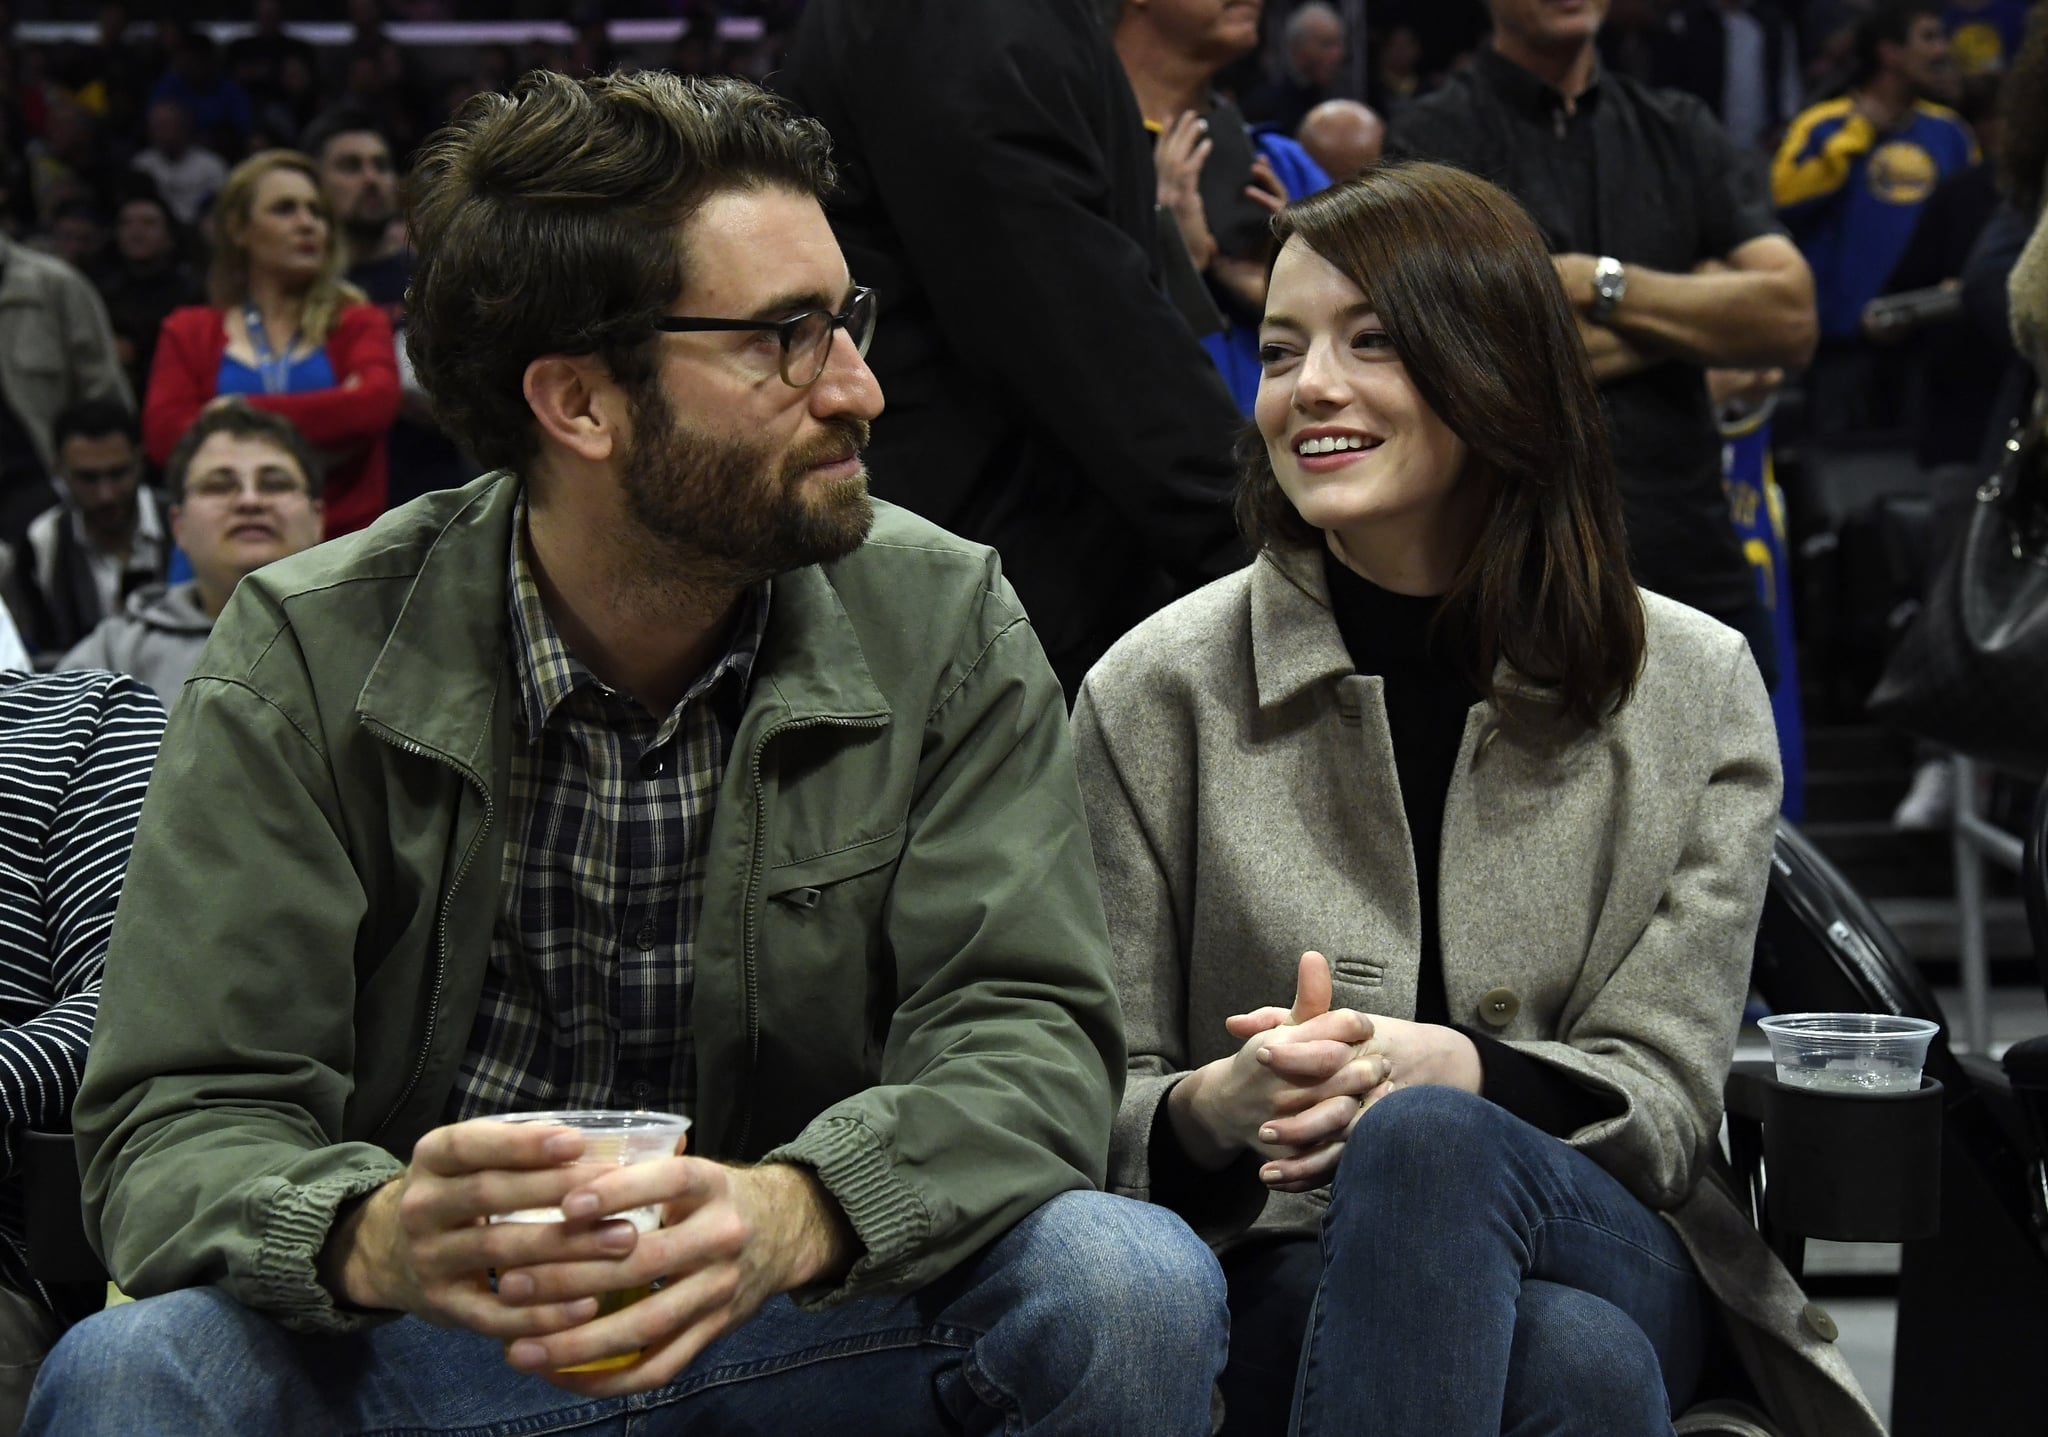 LOS ANGELES, CA - JANUARY 18: Emma Stone and Dave McCary attend the Golden State Warriors and Los Angeles Clippers basketball game at Staples Centre on January 18, 2019 in Los Angeles, California. NOTE TO USER: User expressly acknowledges and agrees that, by downloading and or using this photograph, User is consenting to the terms and conditions of the Getty Images Licence Agreement. (Photo by Kevork Djansezian/Getty Images)